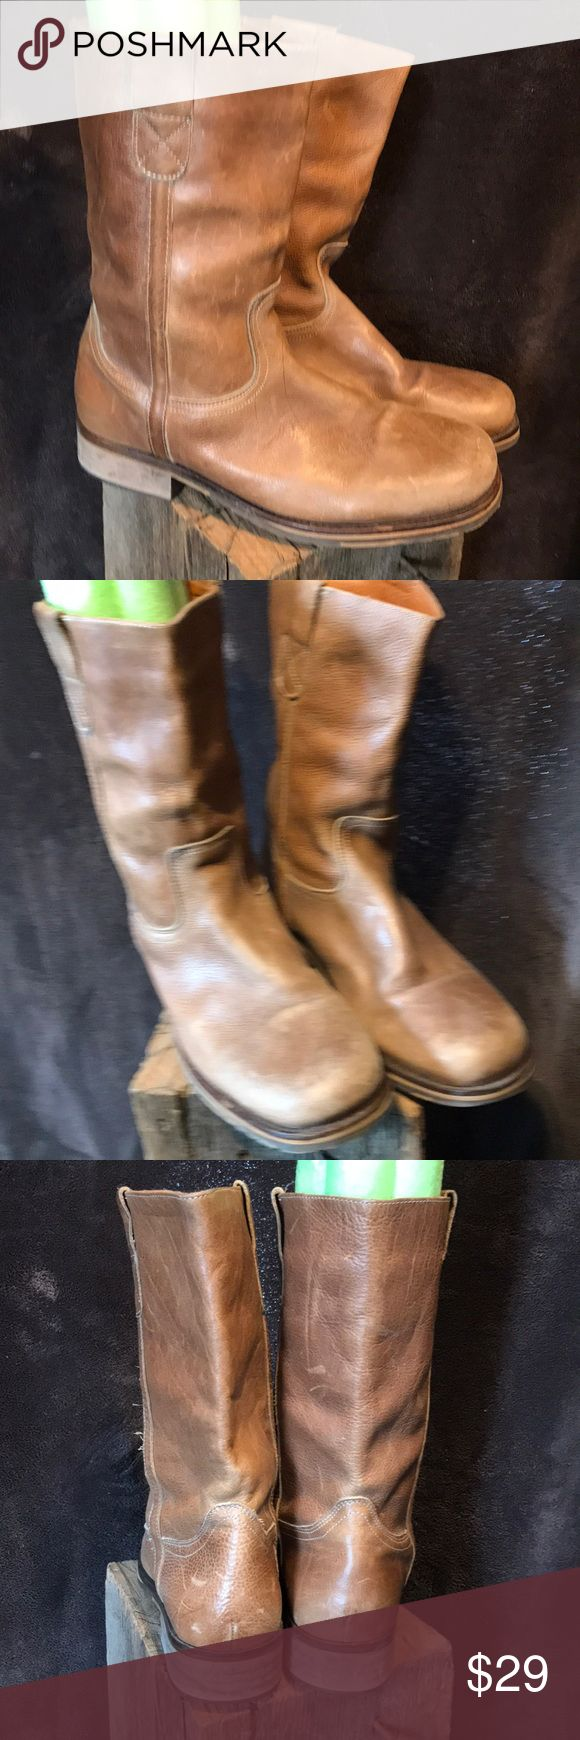 BullBoxer slip on boots size 11 used Used slip on boots from Bull Boxer we ship fast size 11 slip ons BullBoxer Shoes Boots